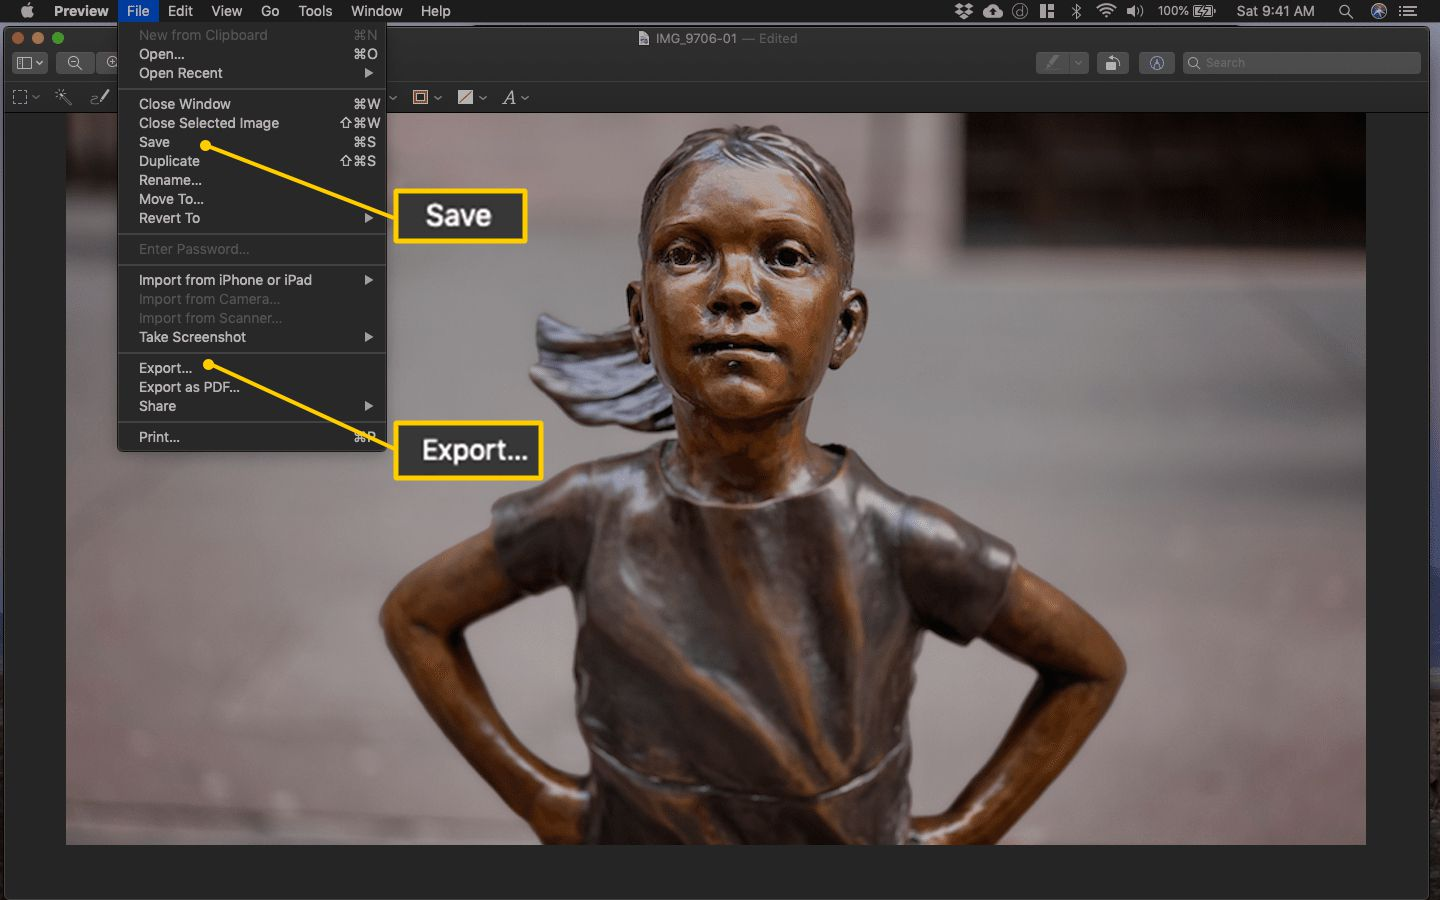 File > Save and File > Export menu items in Preview on macOS